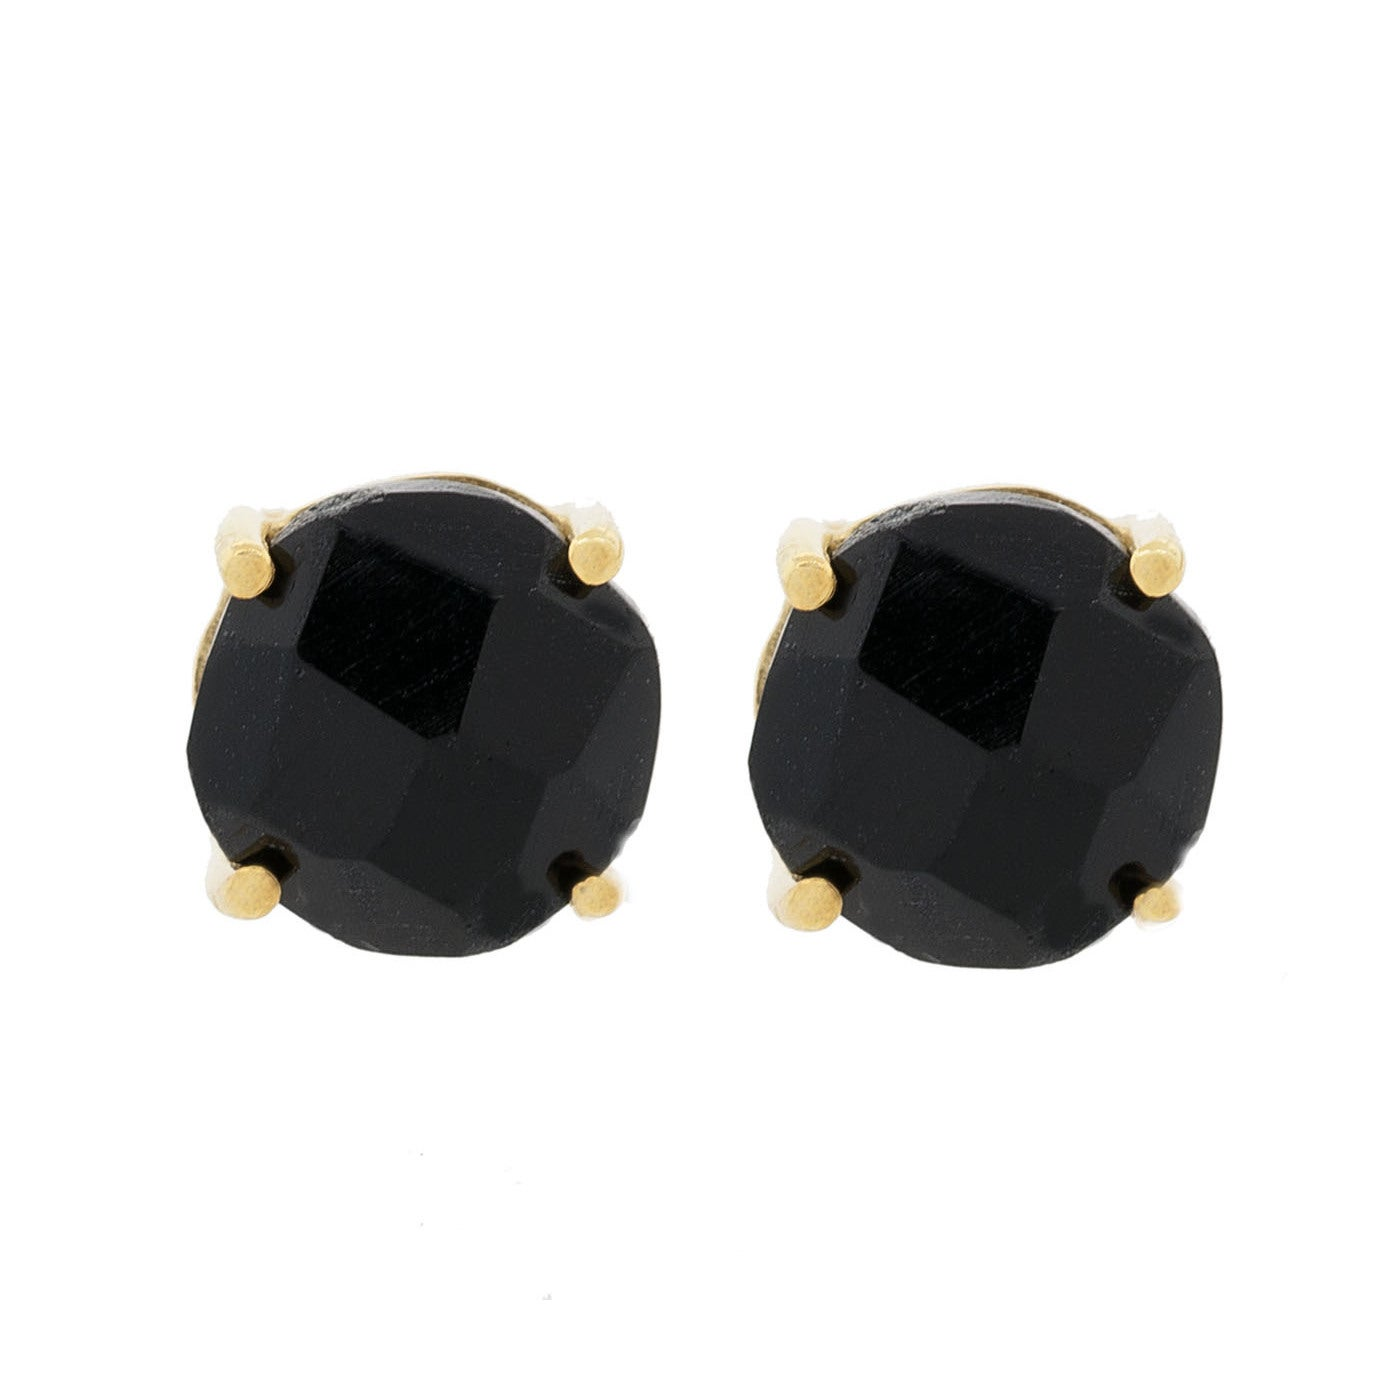 Pori 18k Gold Plated Sterling Silver Black Onyx Gemstone Round G Stud Earrings